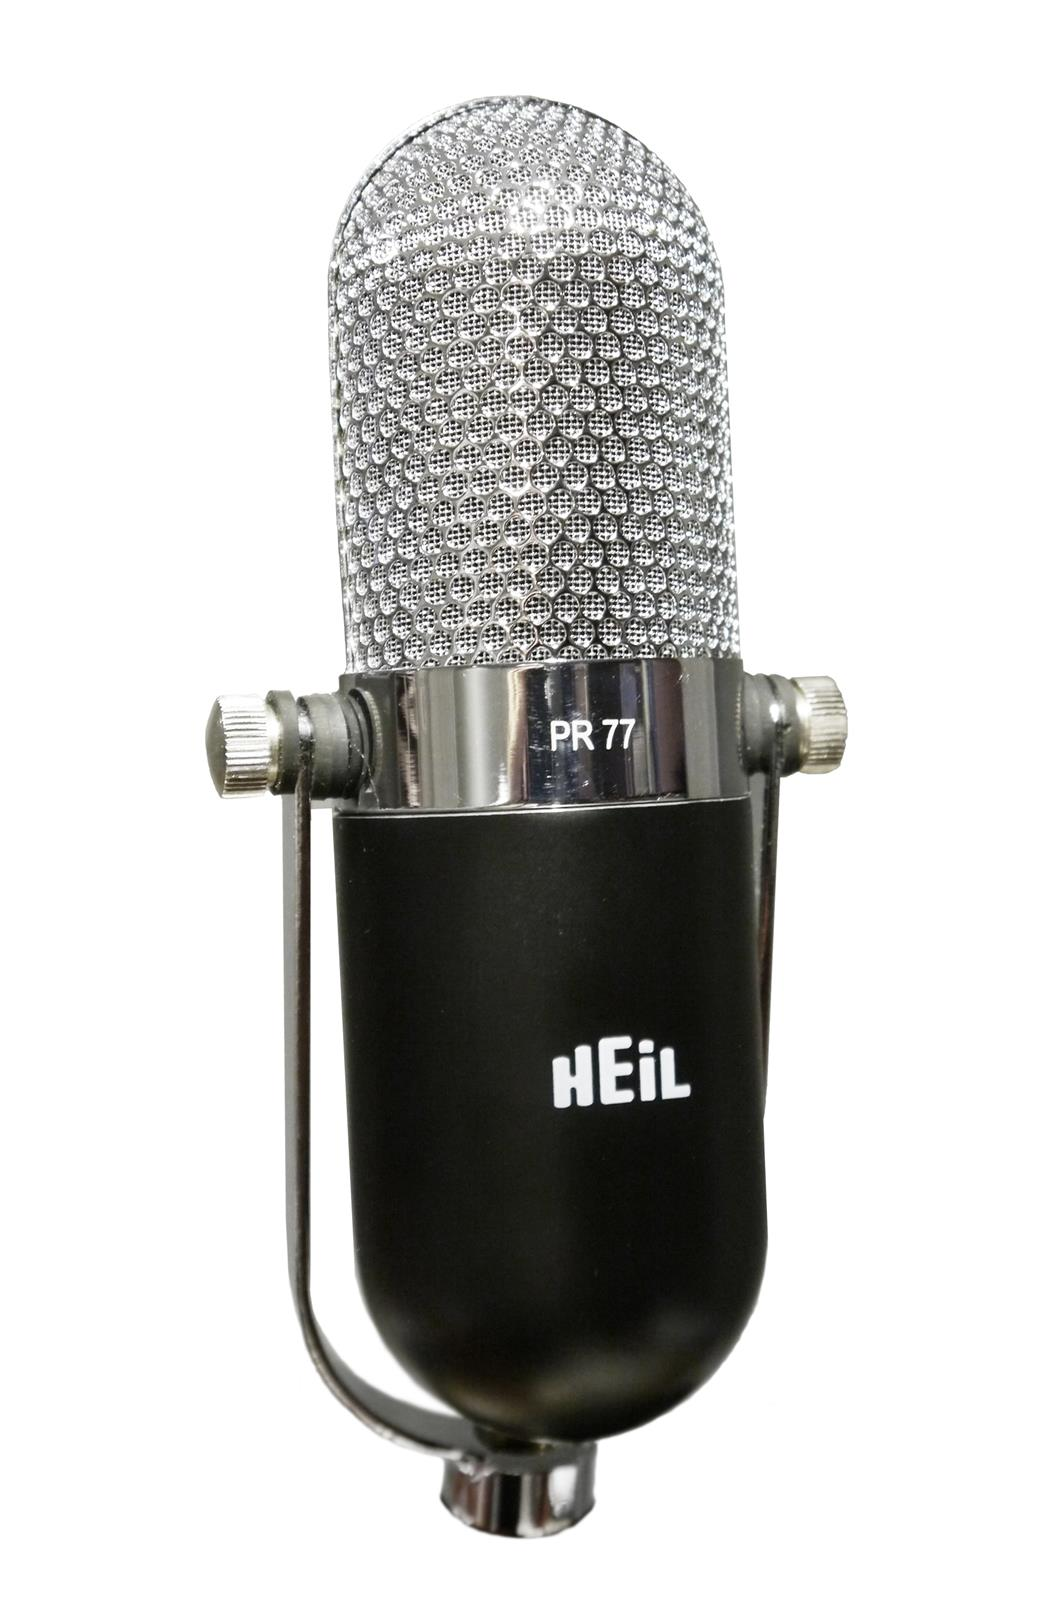 Heil max performance 10 manual array heil pr 77 microphones pr77 free shipping on most orders over 99 rh dxengineering fandeluxe Gallery